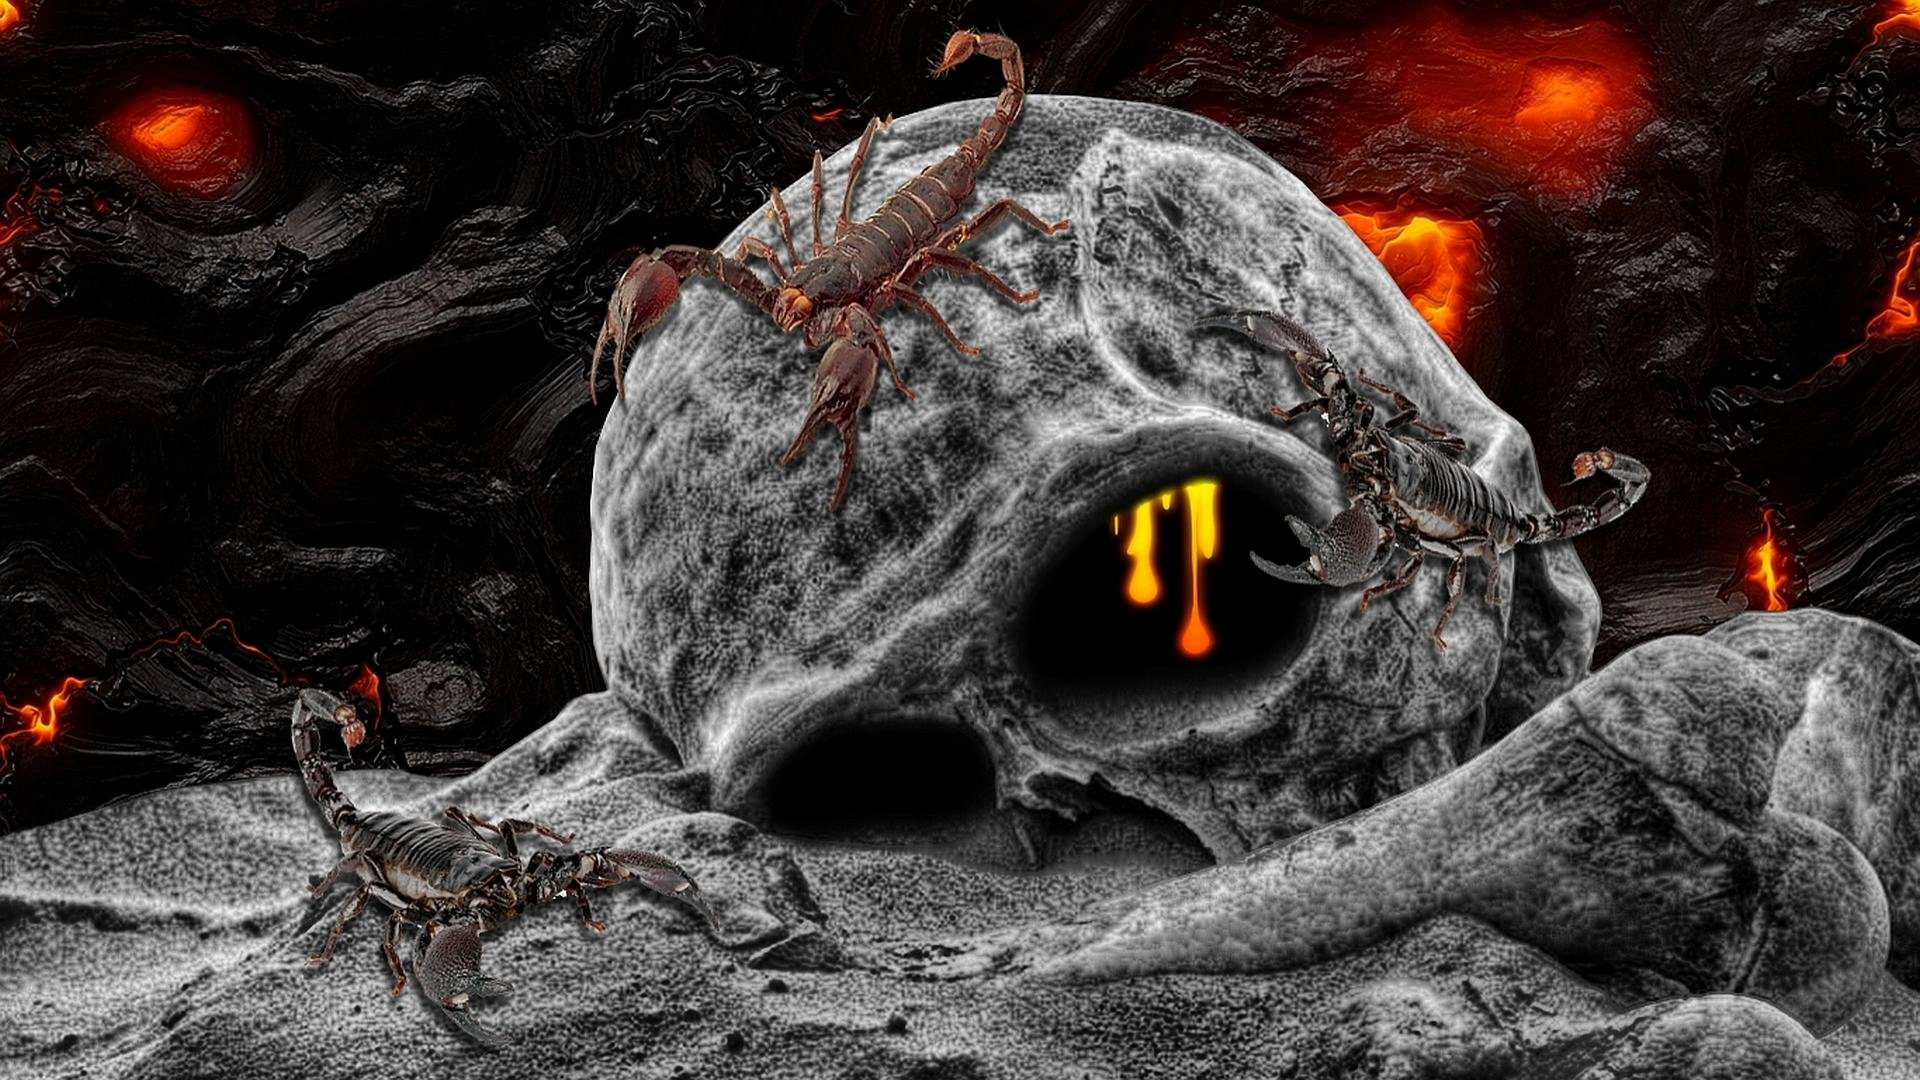 Awesome Skull Wallpapers Wallpapers Browse: Skull Wallpapers 1920x1080 Full HD (1080p) Desktop Backgrounds